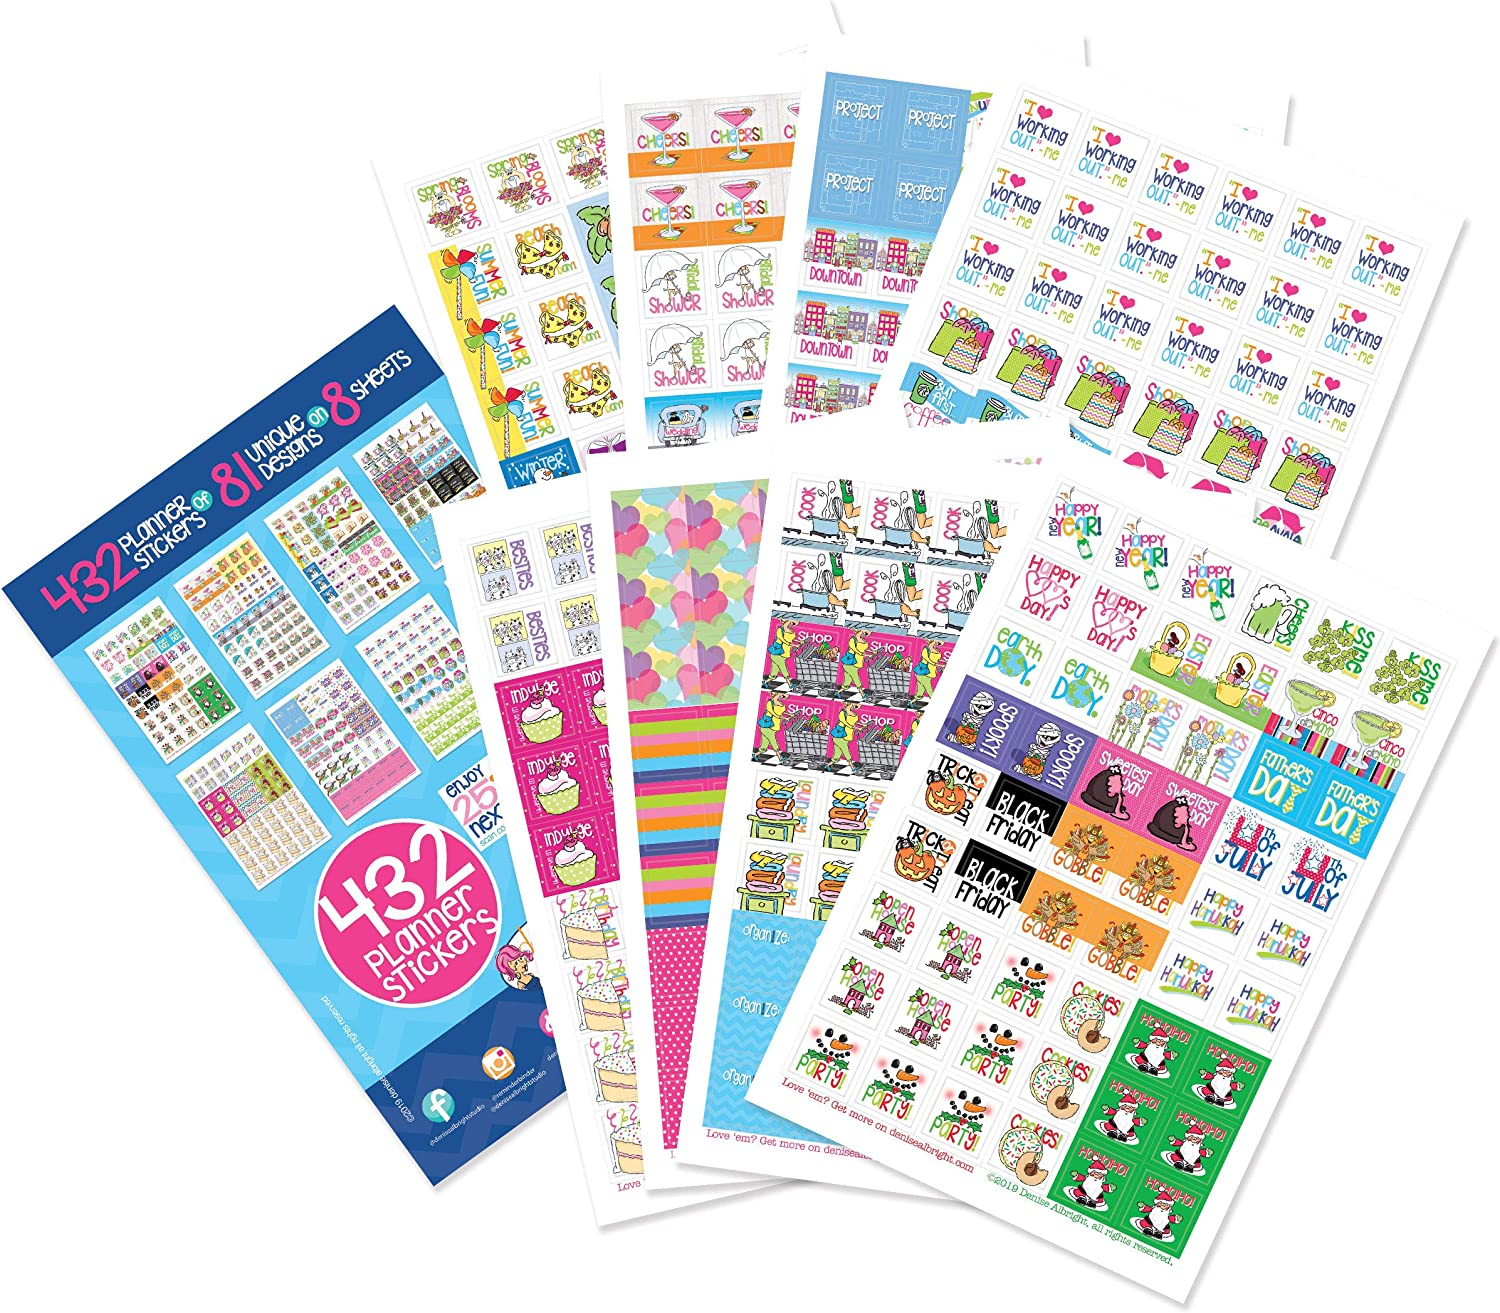 Planner Stickers Variety Set (Qty 432) Value Pack for Holidays, Birthdays, Home, Wedding, Shower, Work, Appointments, Party, Date Night, Seasons, Workout Tracking & Tasks for Any Planner or Organizer